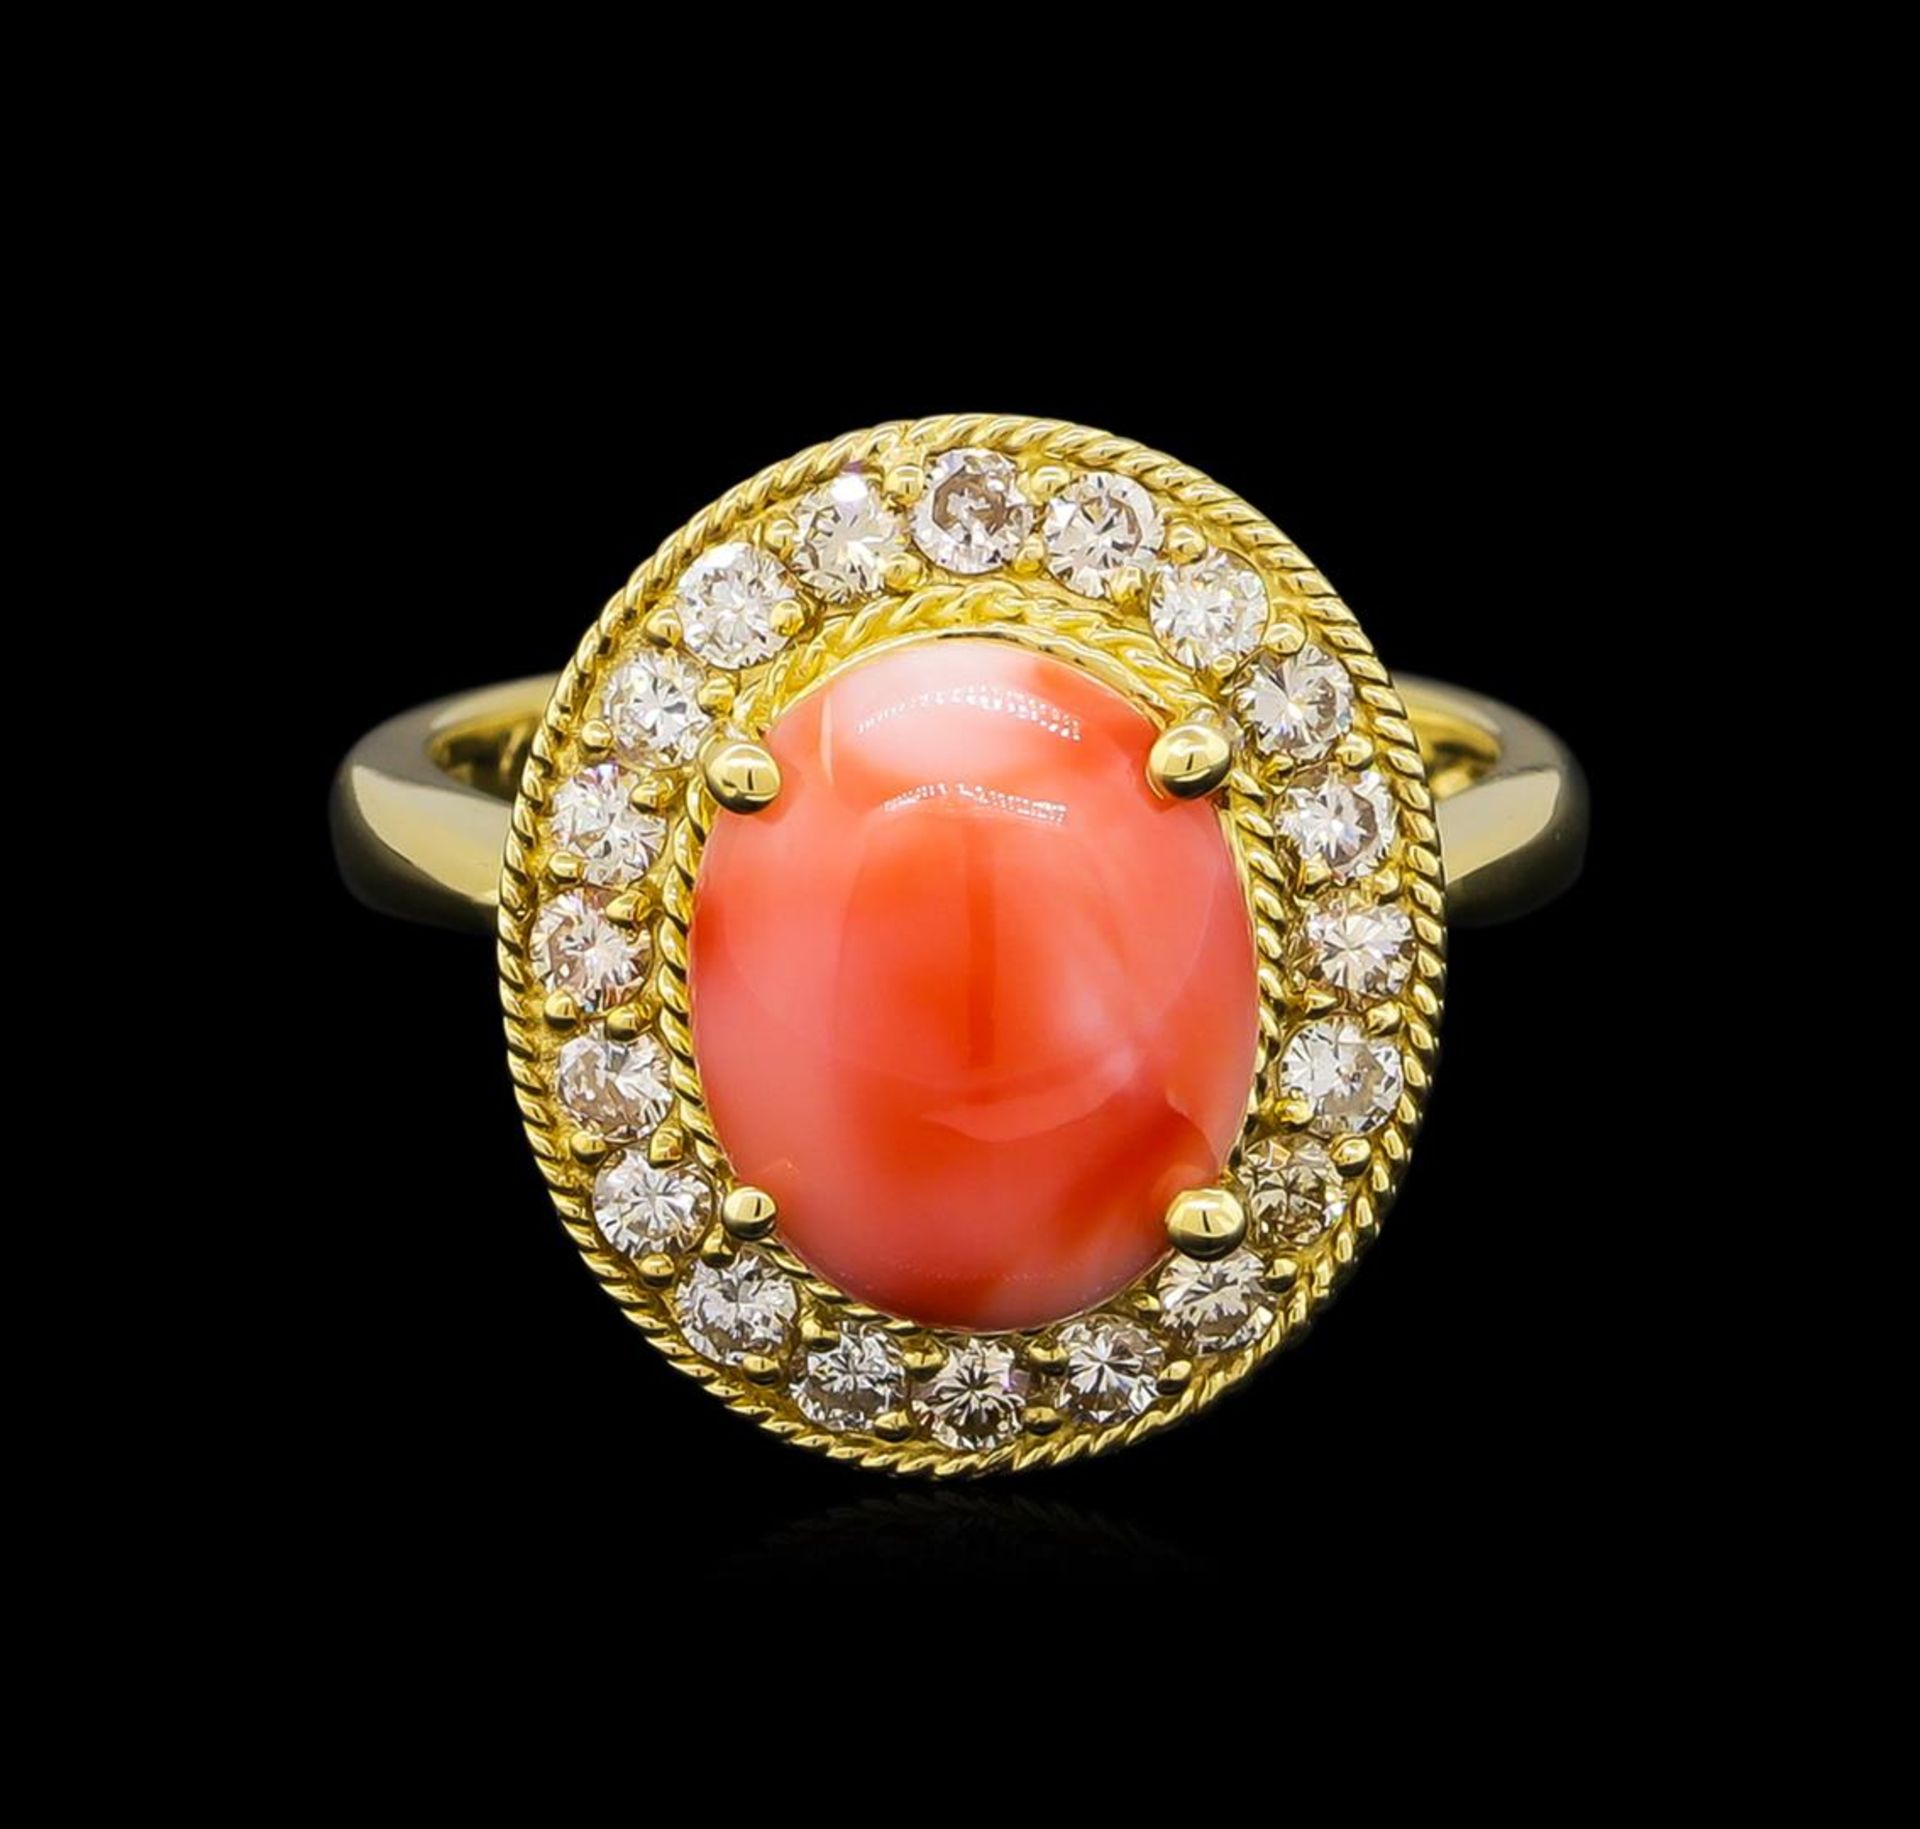 14KT Yellow Gold 3.16 ctw Coral and Diamond Ring - Image 2 of 5